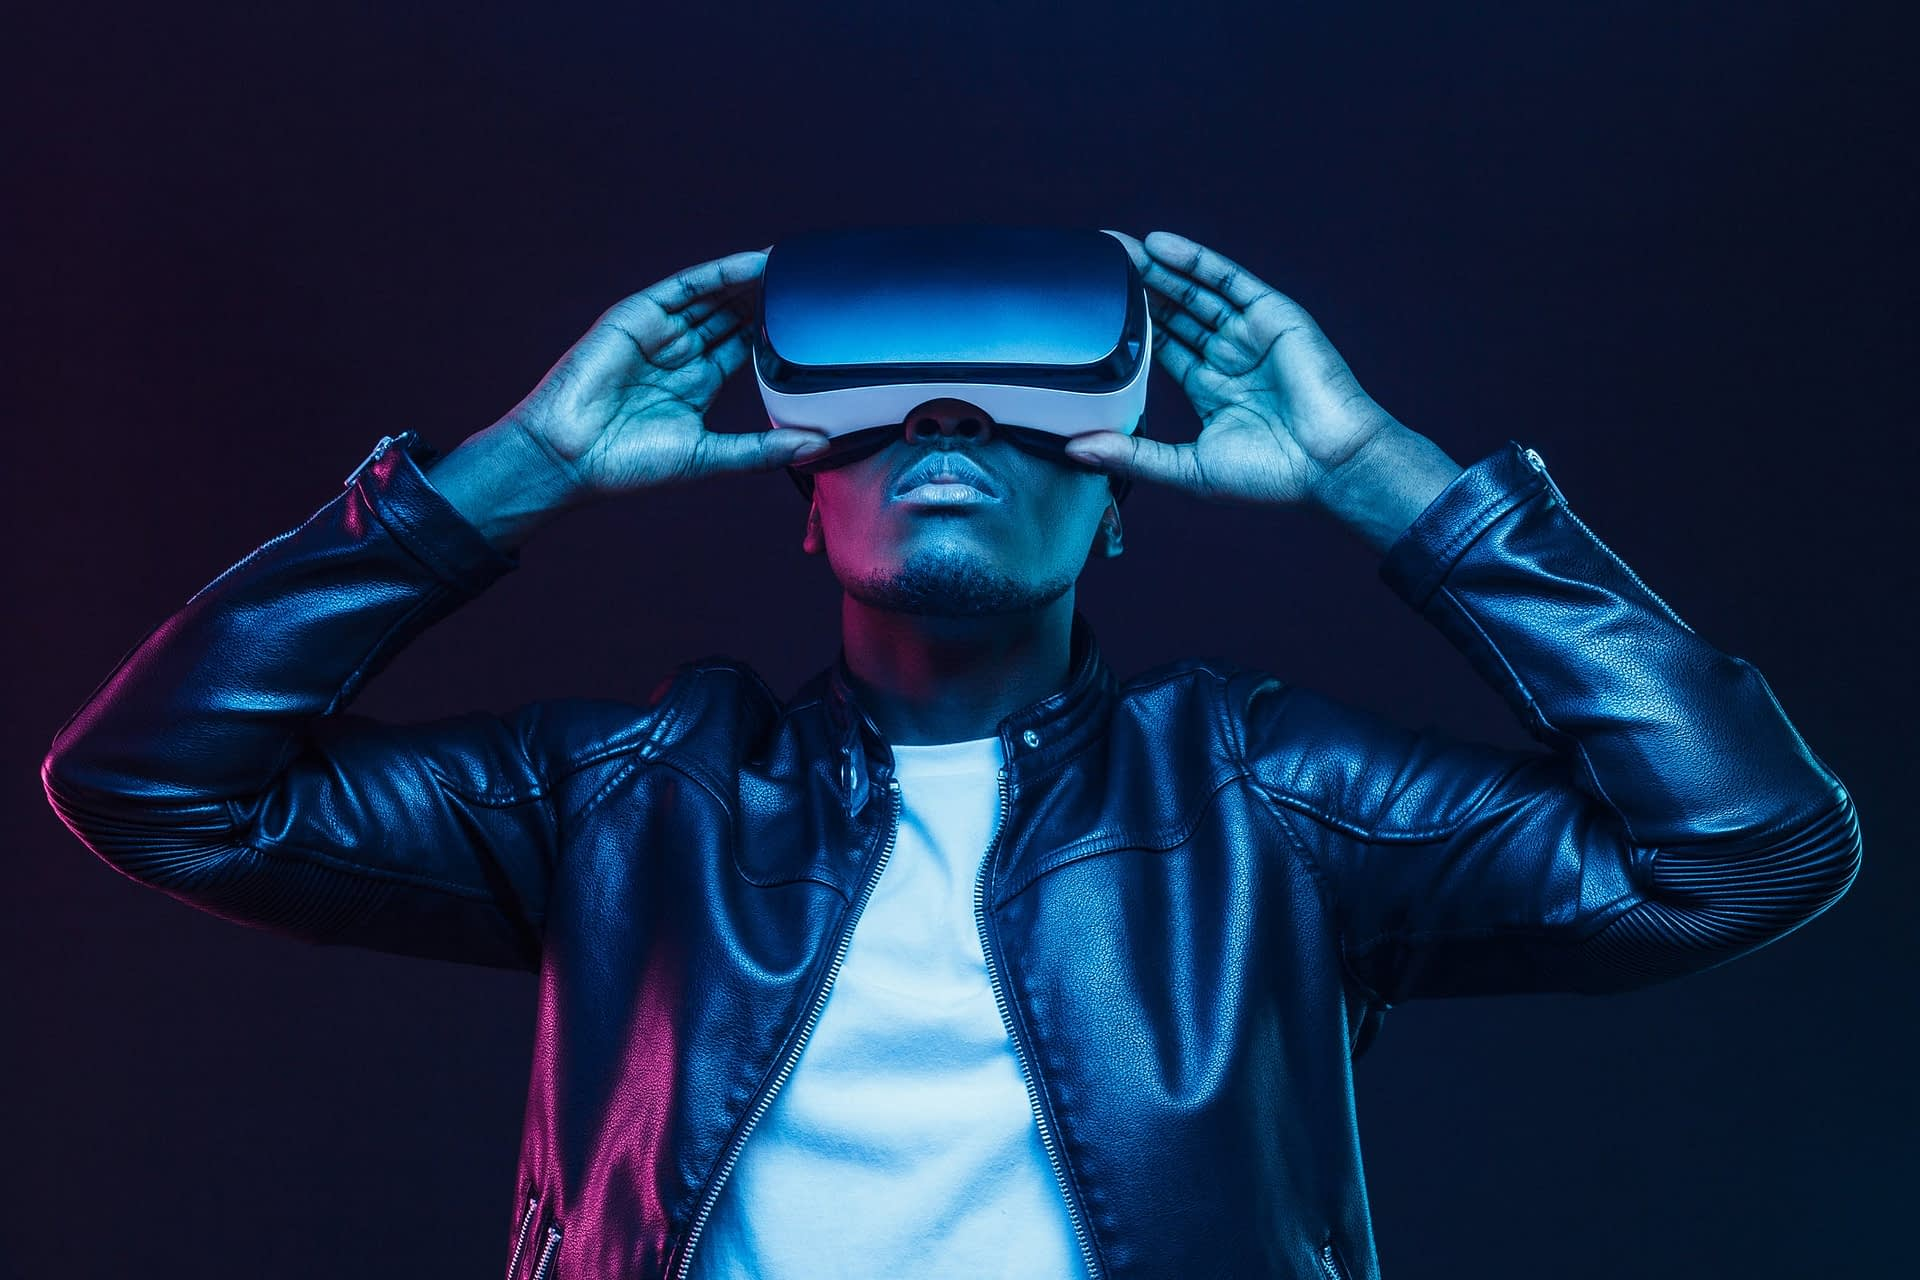 man with video vr headset